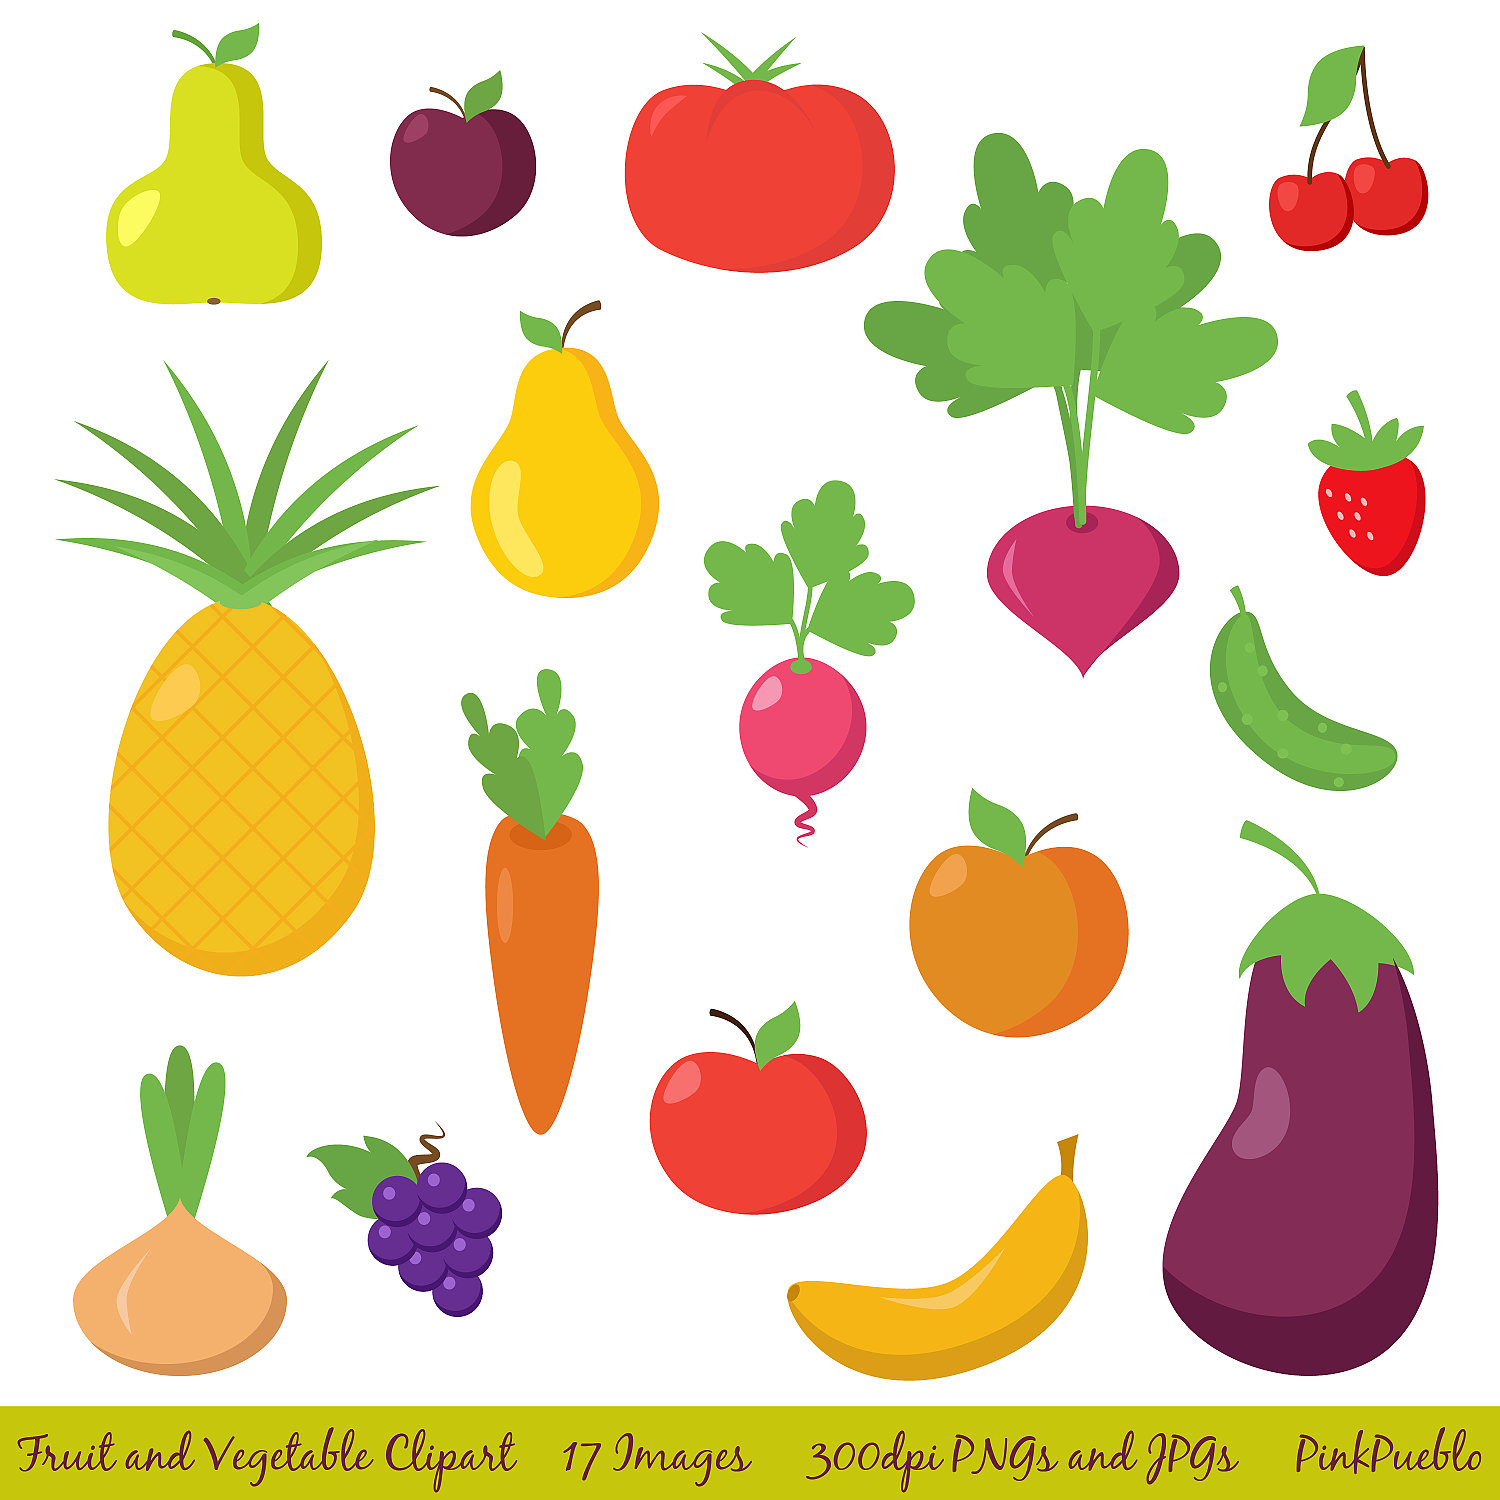 Fruit And Vegetable Clipart Clip Art, Fr-Fruit and Vegetable Clipart Clip Art, Fruit Clipart Clip Art, Vegetable Clipart Clip Art - Commercial and Personal Use-1